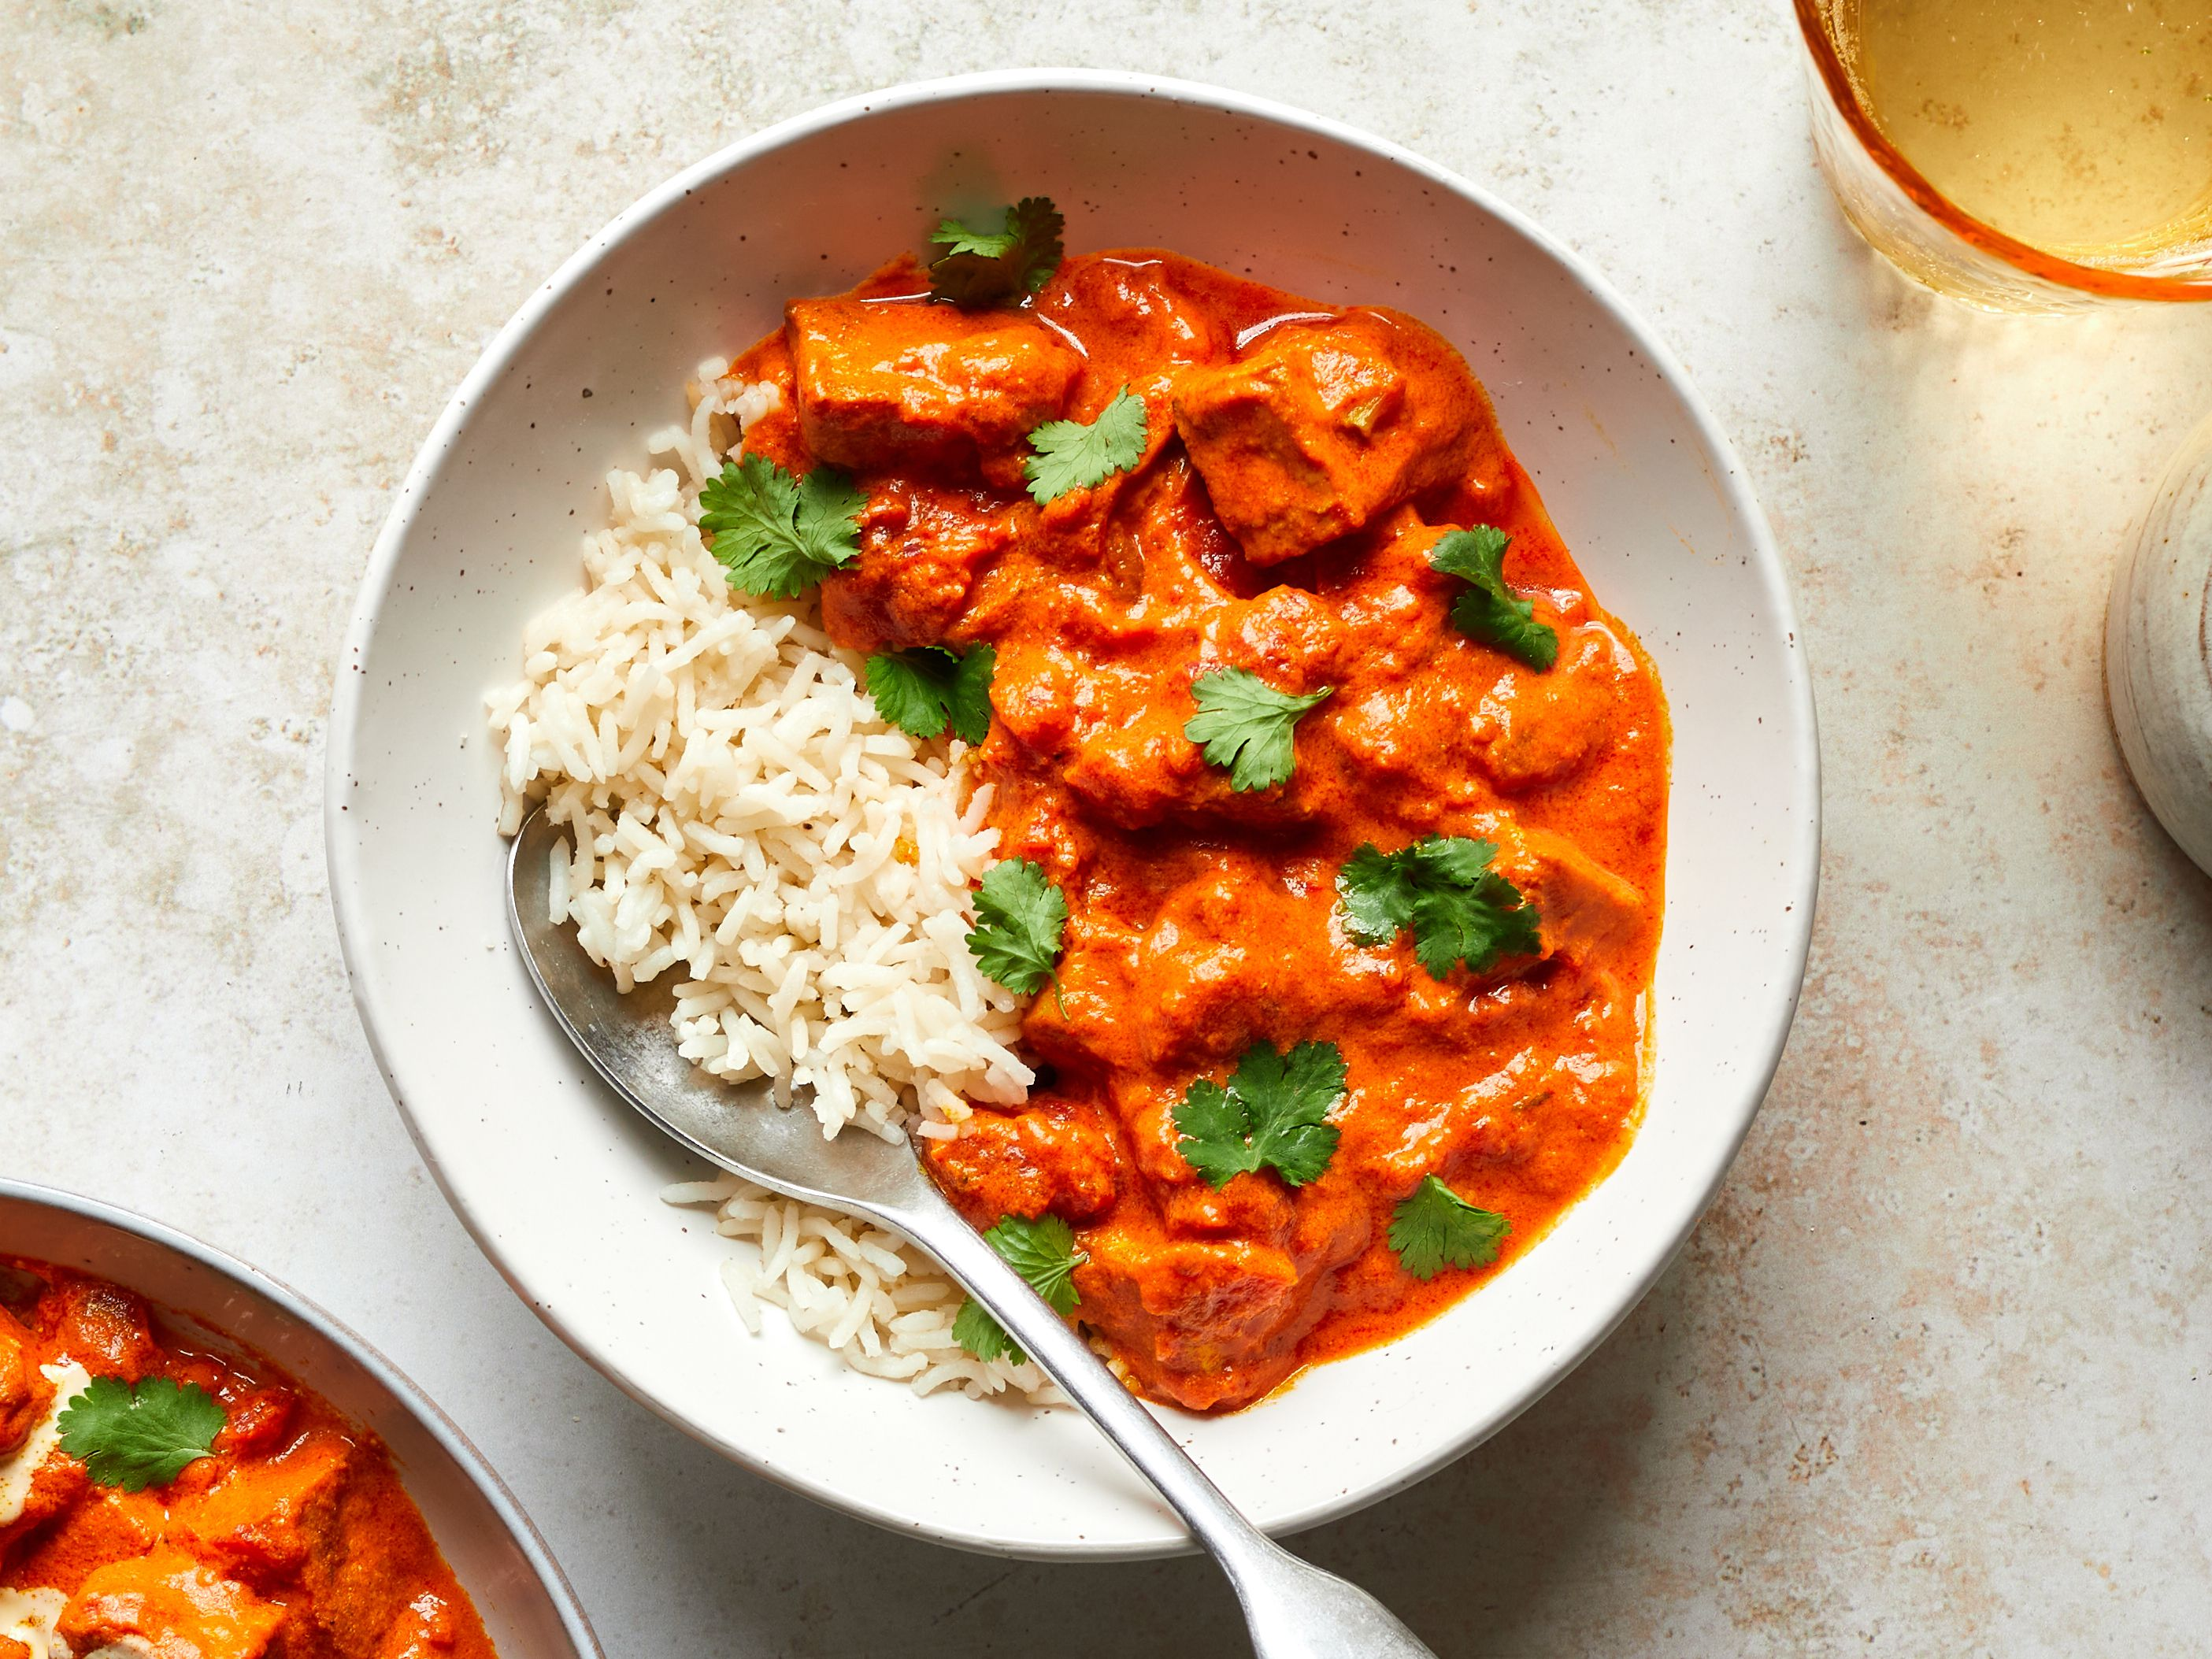 Vegan Indian Tofu Tikka Masala Recipe